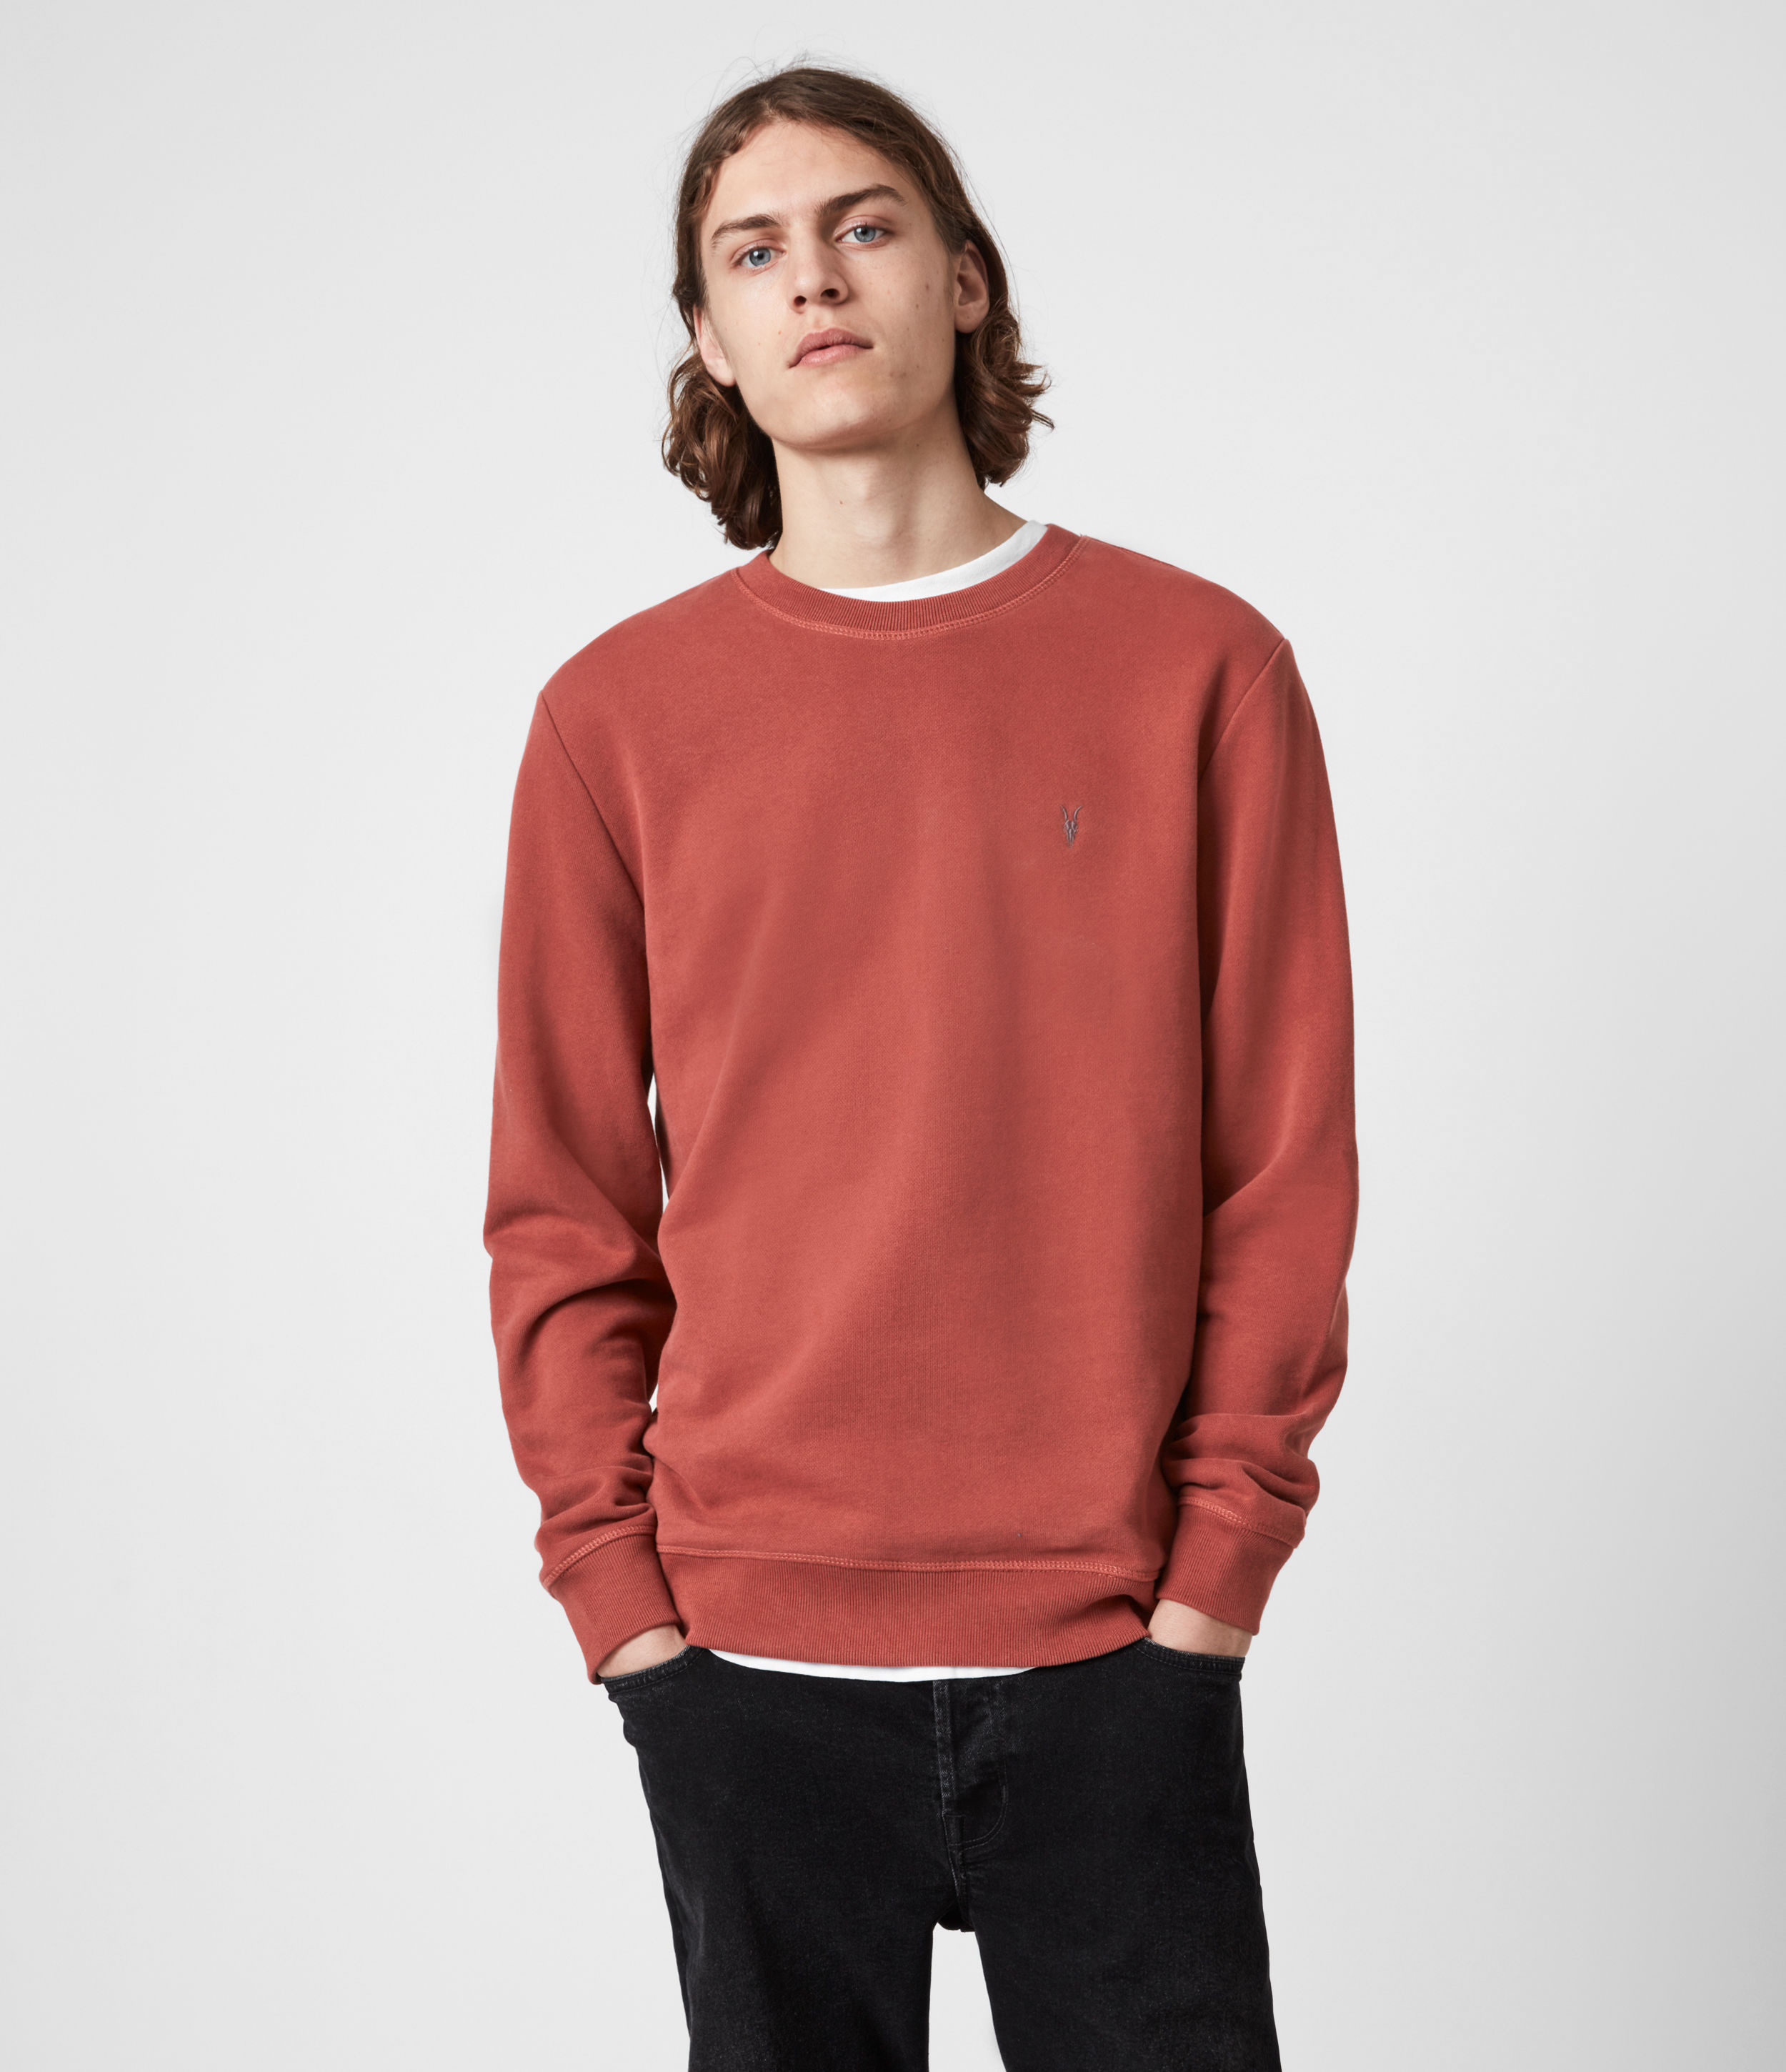 AllSaints Mens Raven Crew Sweatshirt, Clay RED, Size: M